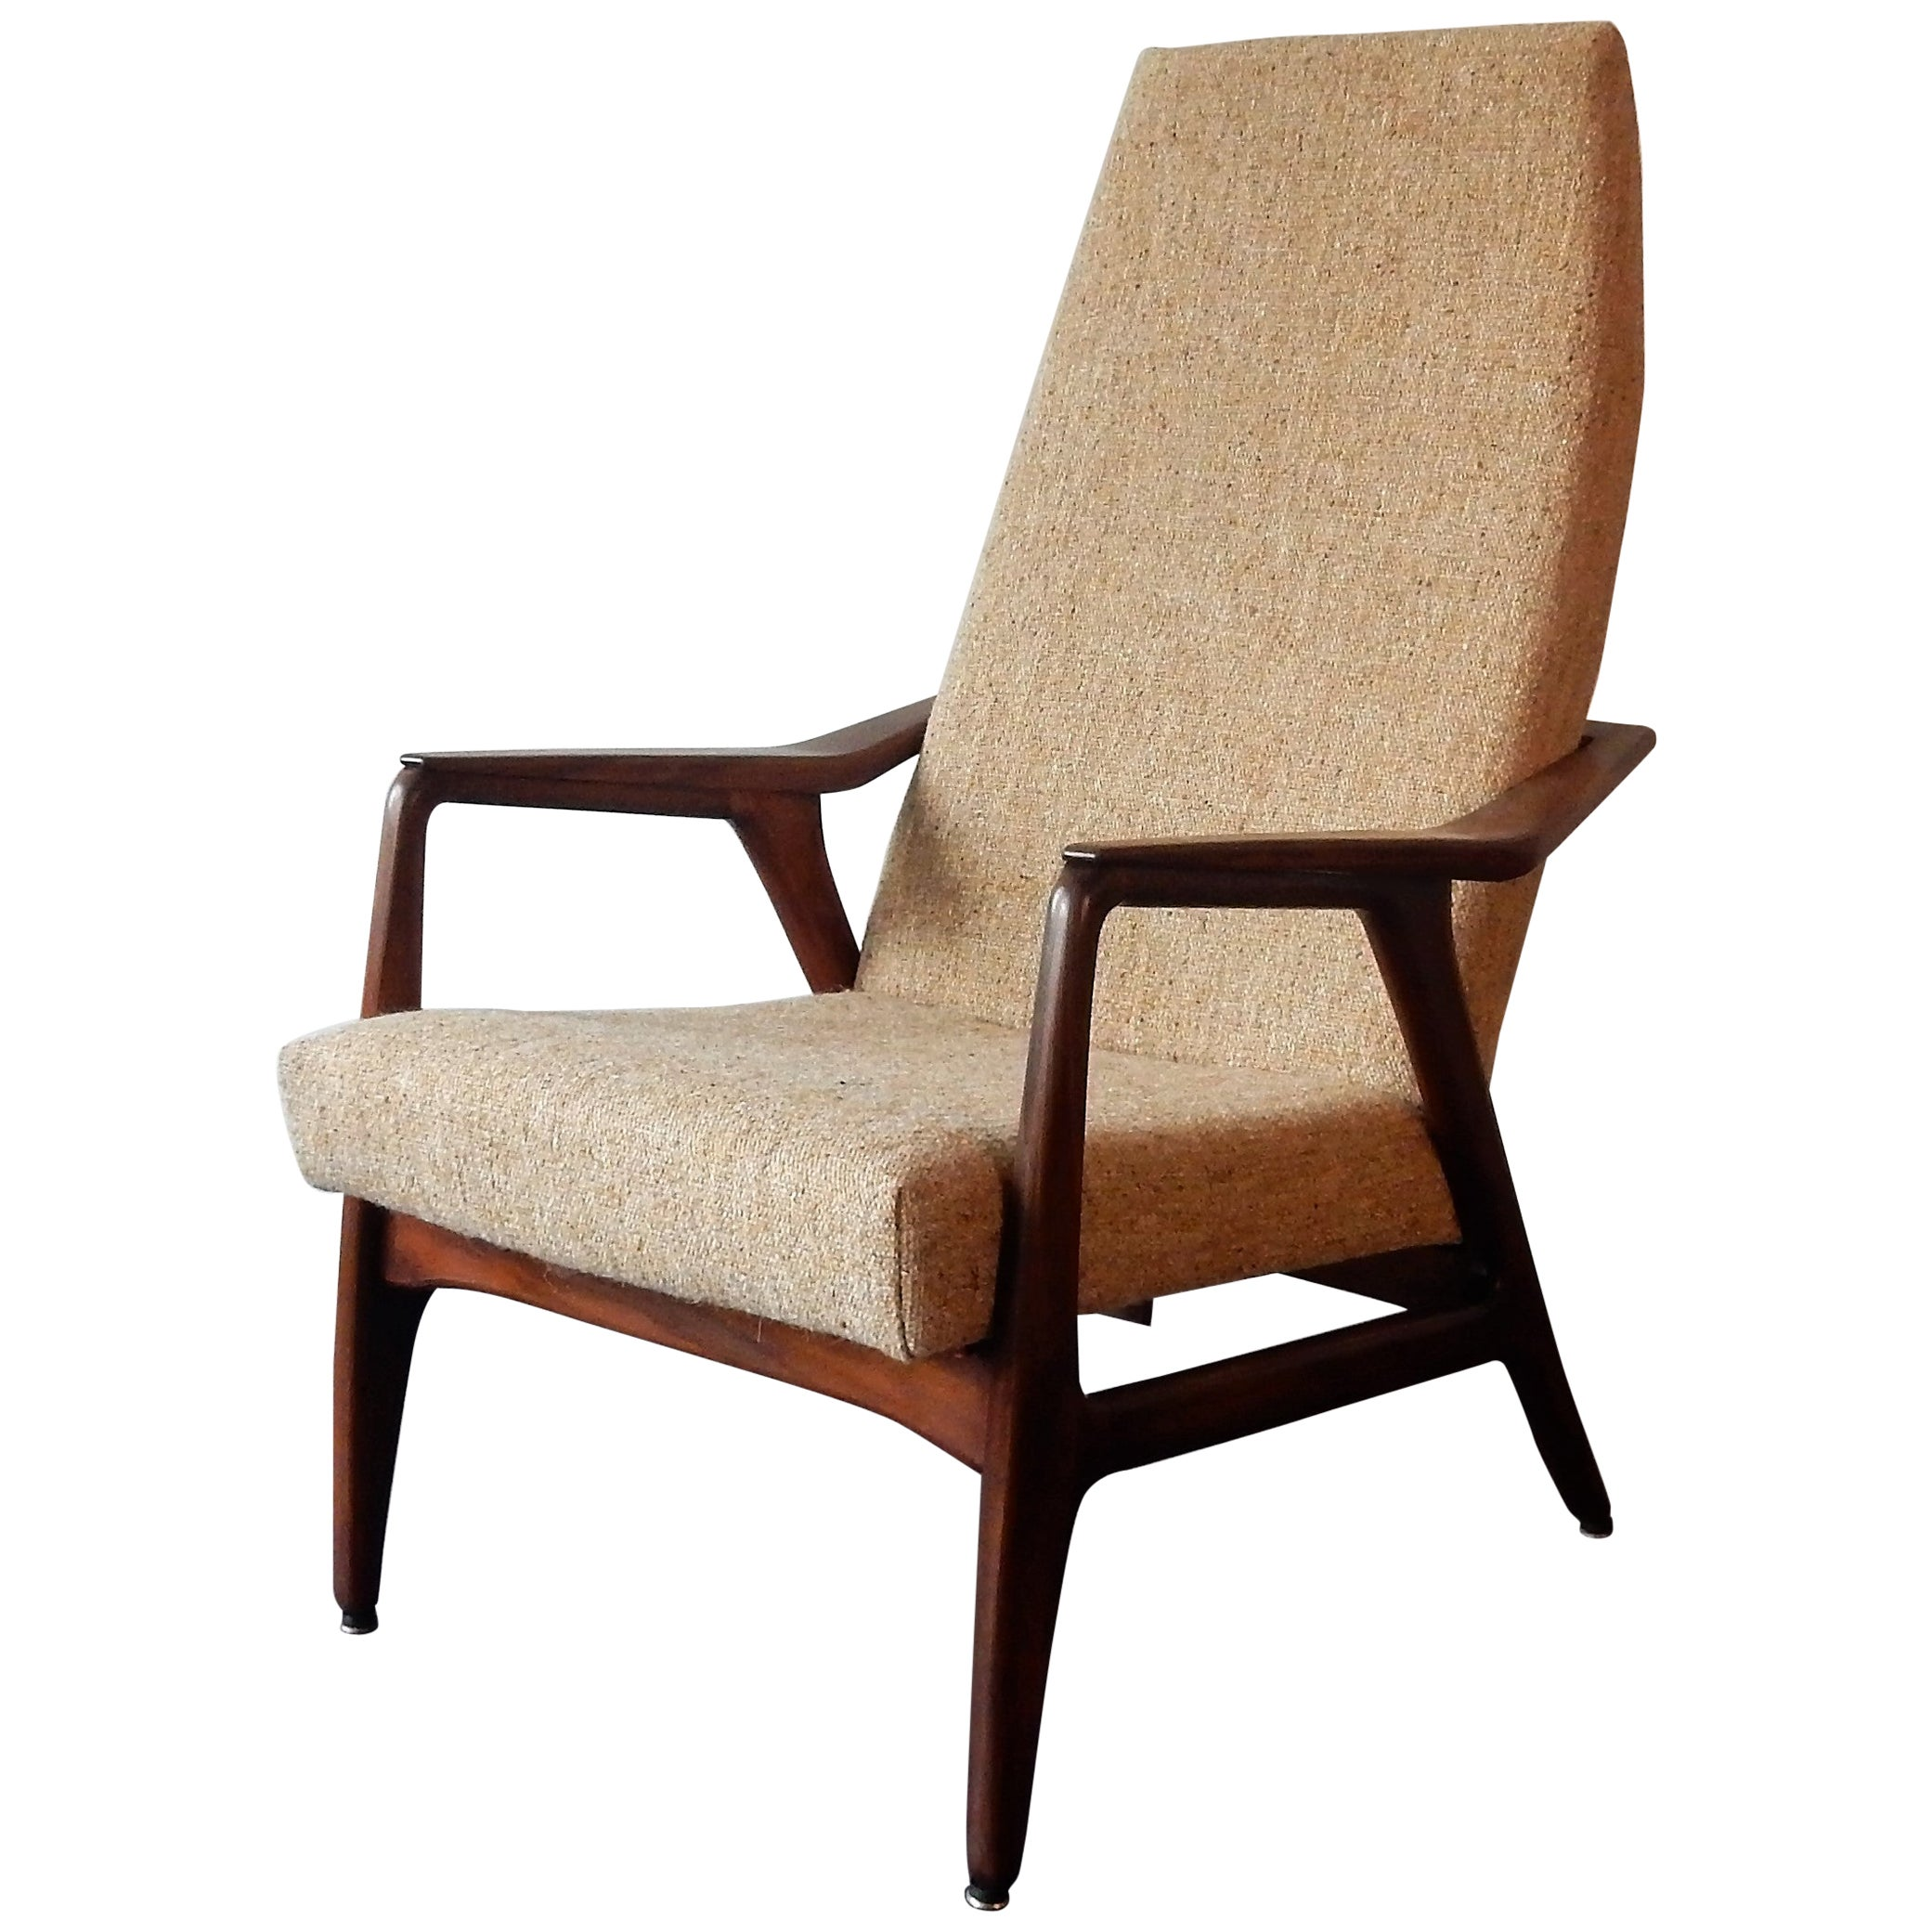 Vintage Teak High Back Lounge Chair, 1960s